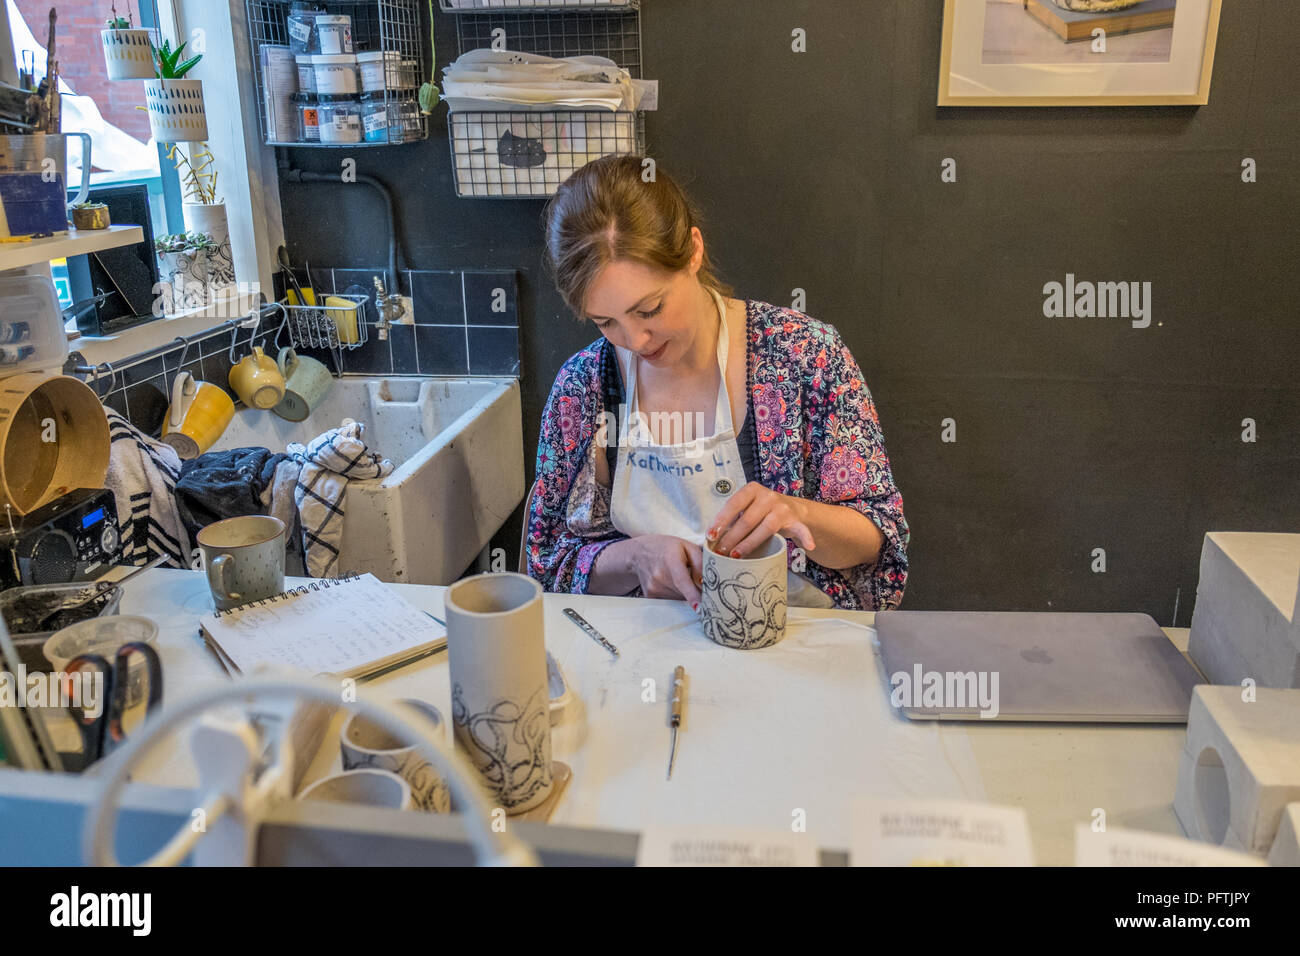 A young lady working in her workshop making ceramic jugs - Stock Image